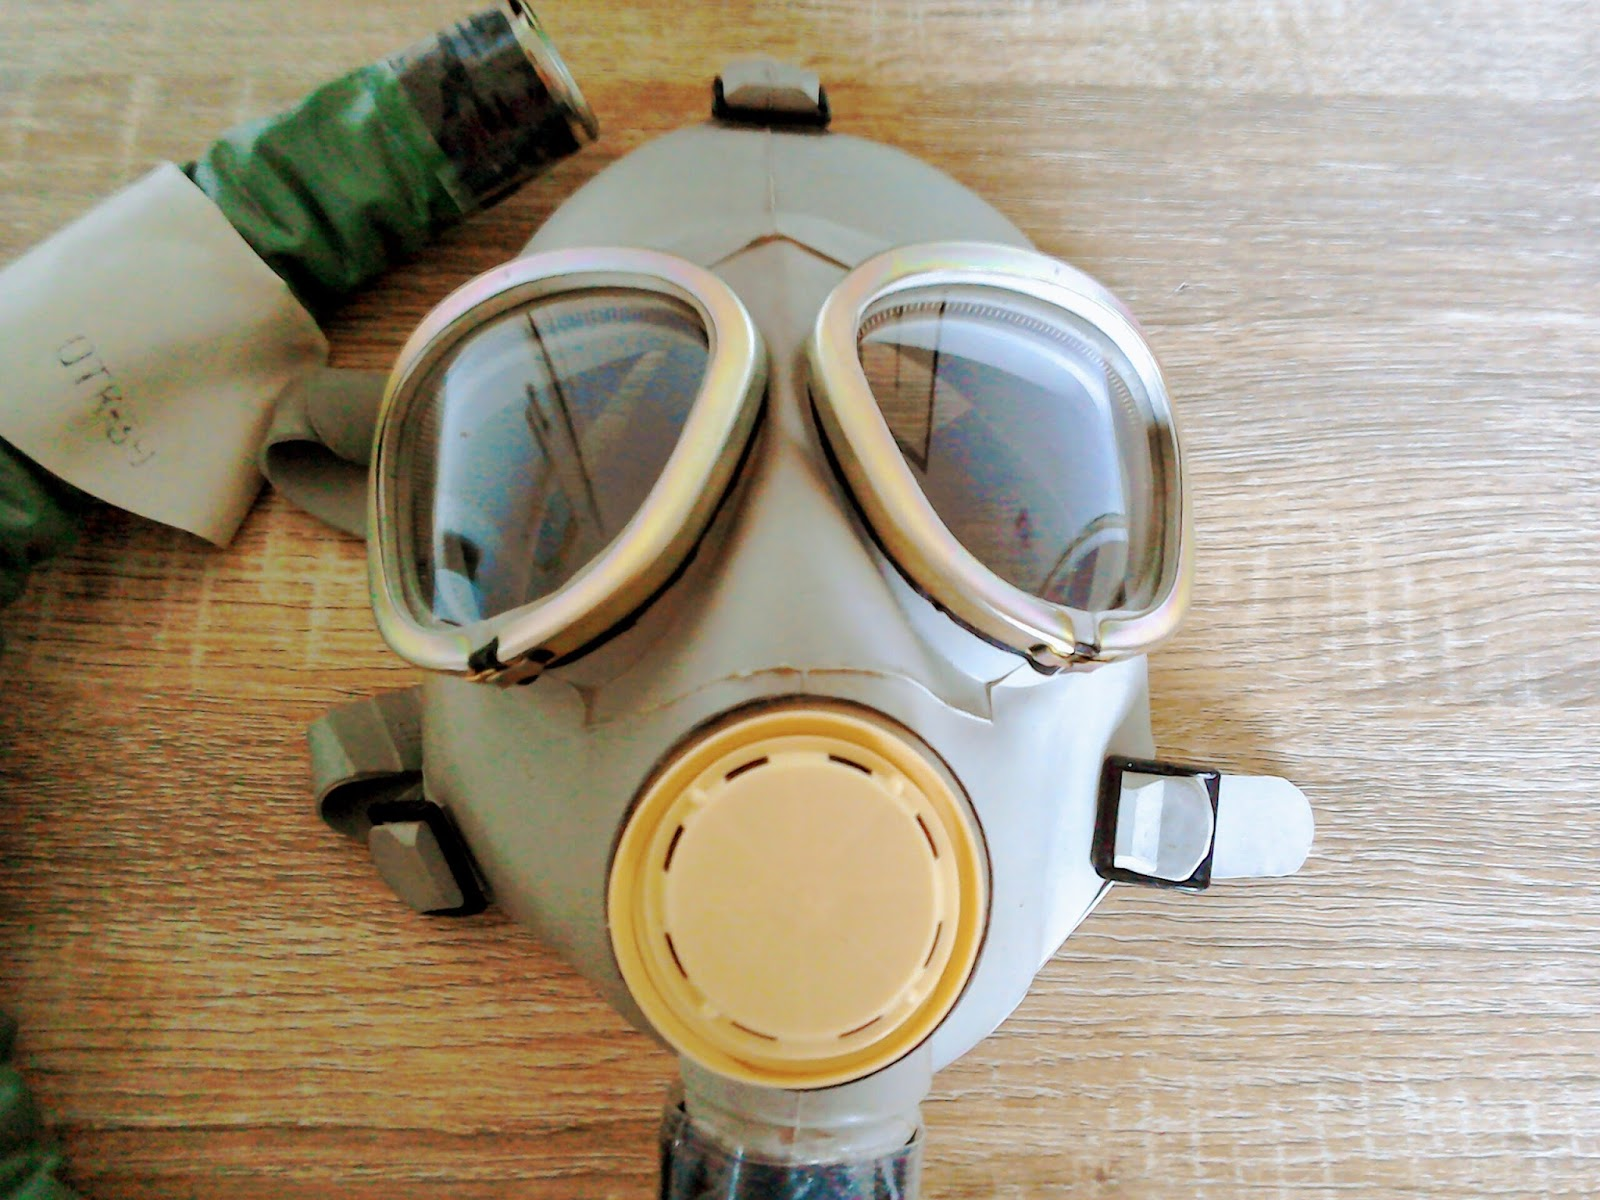 IP4 IP-4 ИП-4 RUSSIAN GAS MASK NEW REBREATHER WITH OXYGEN CANISTER IP4M 1994